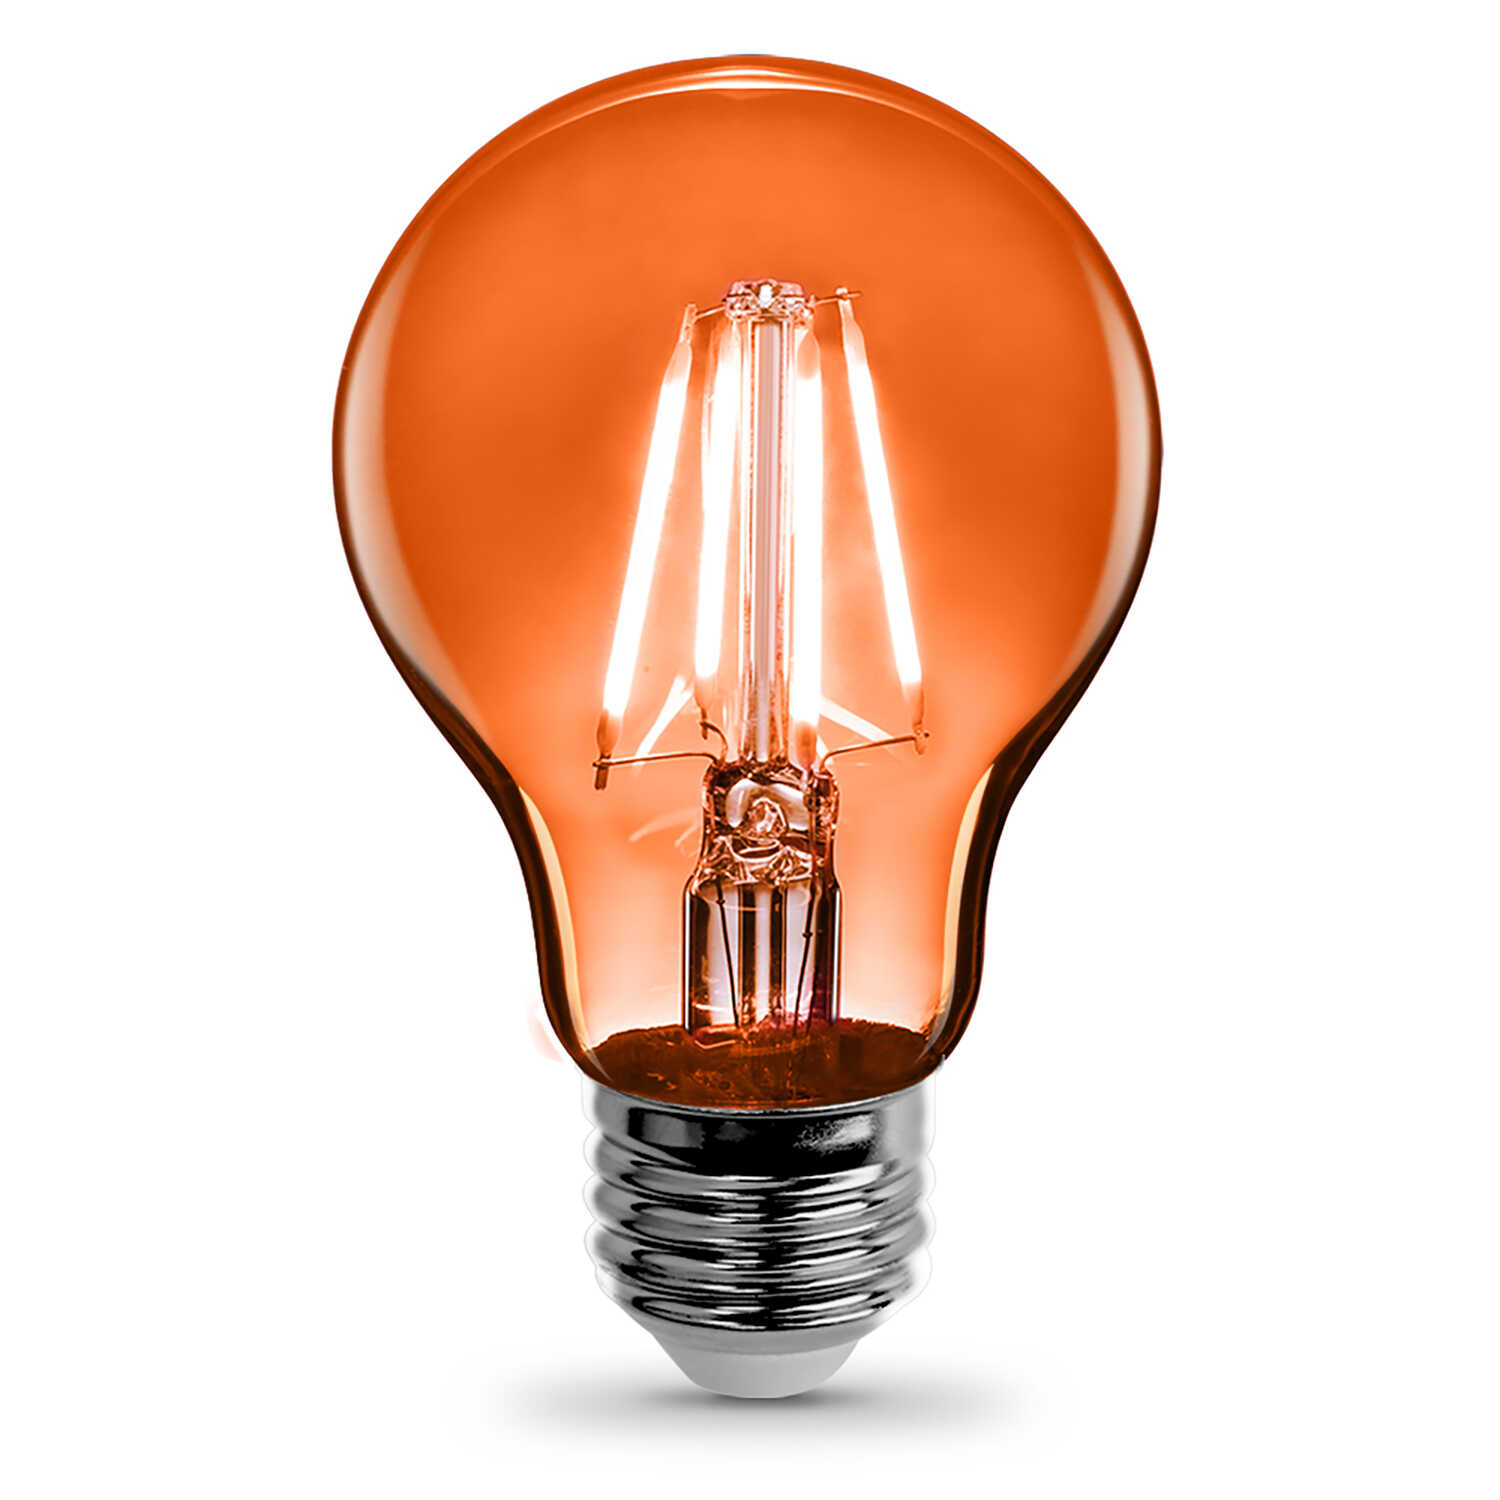 FEIT Electric  Filament  4.5 watts A19  LED Bulb  450 lumens Orange  30 Watt Equivalence A-Line